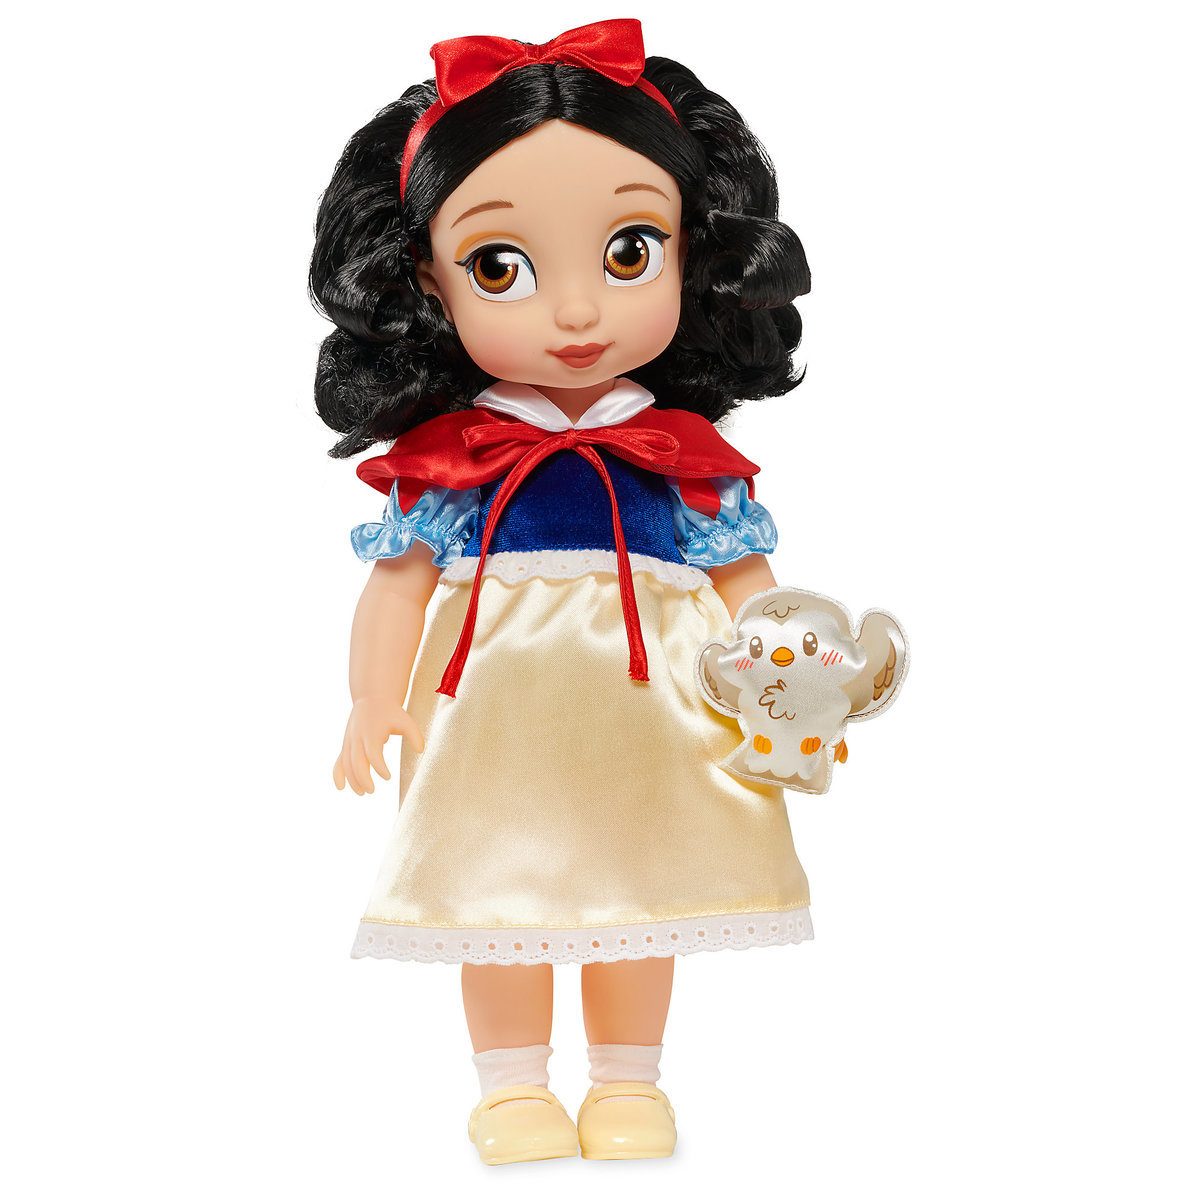 6c383f41a2d3f Product Image of Disney Animators' Collection Snow White Doll - 16'' # 1